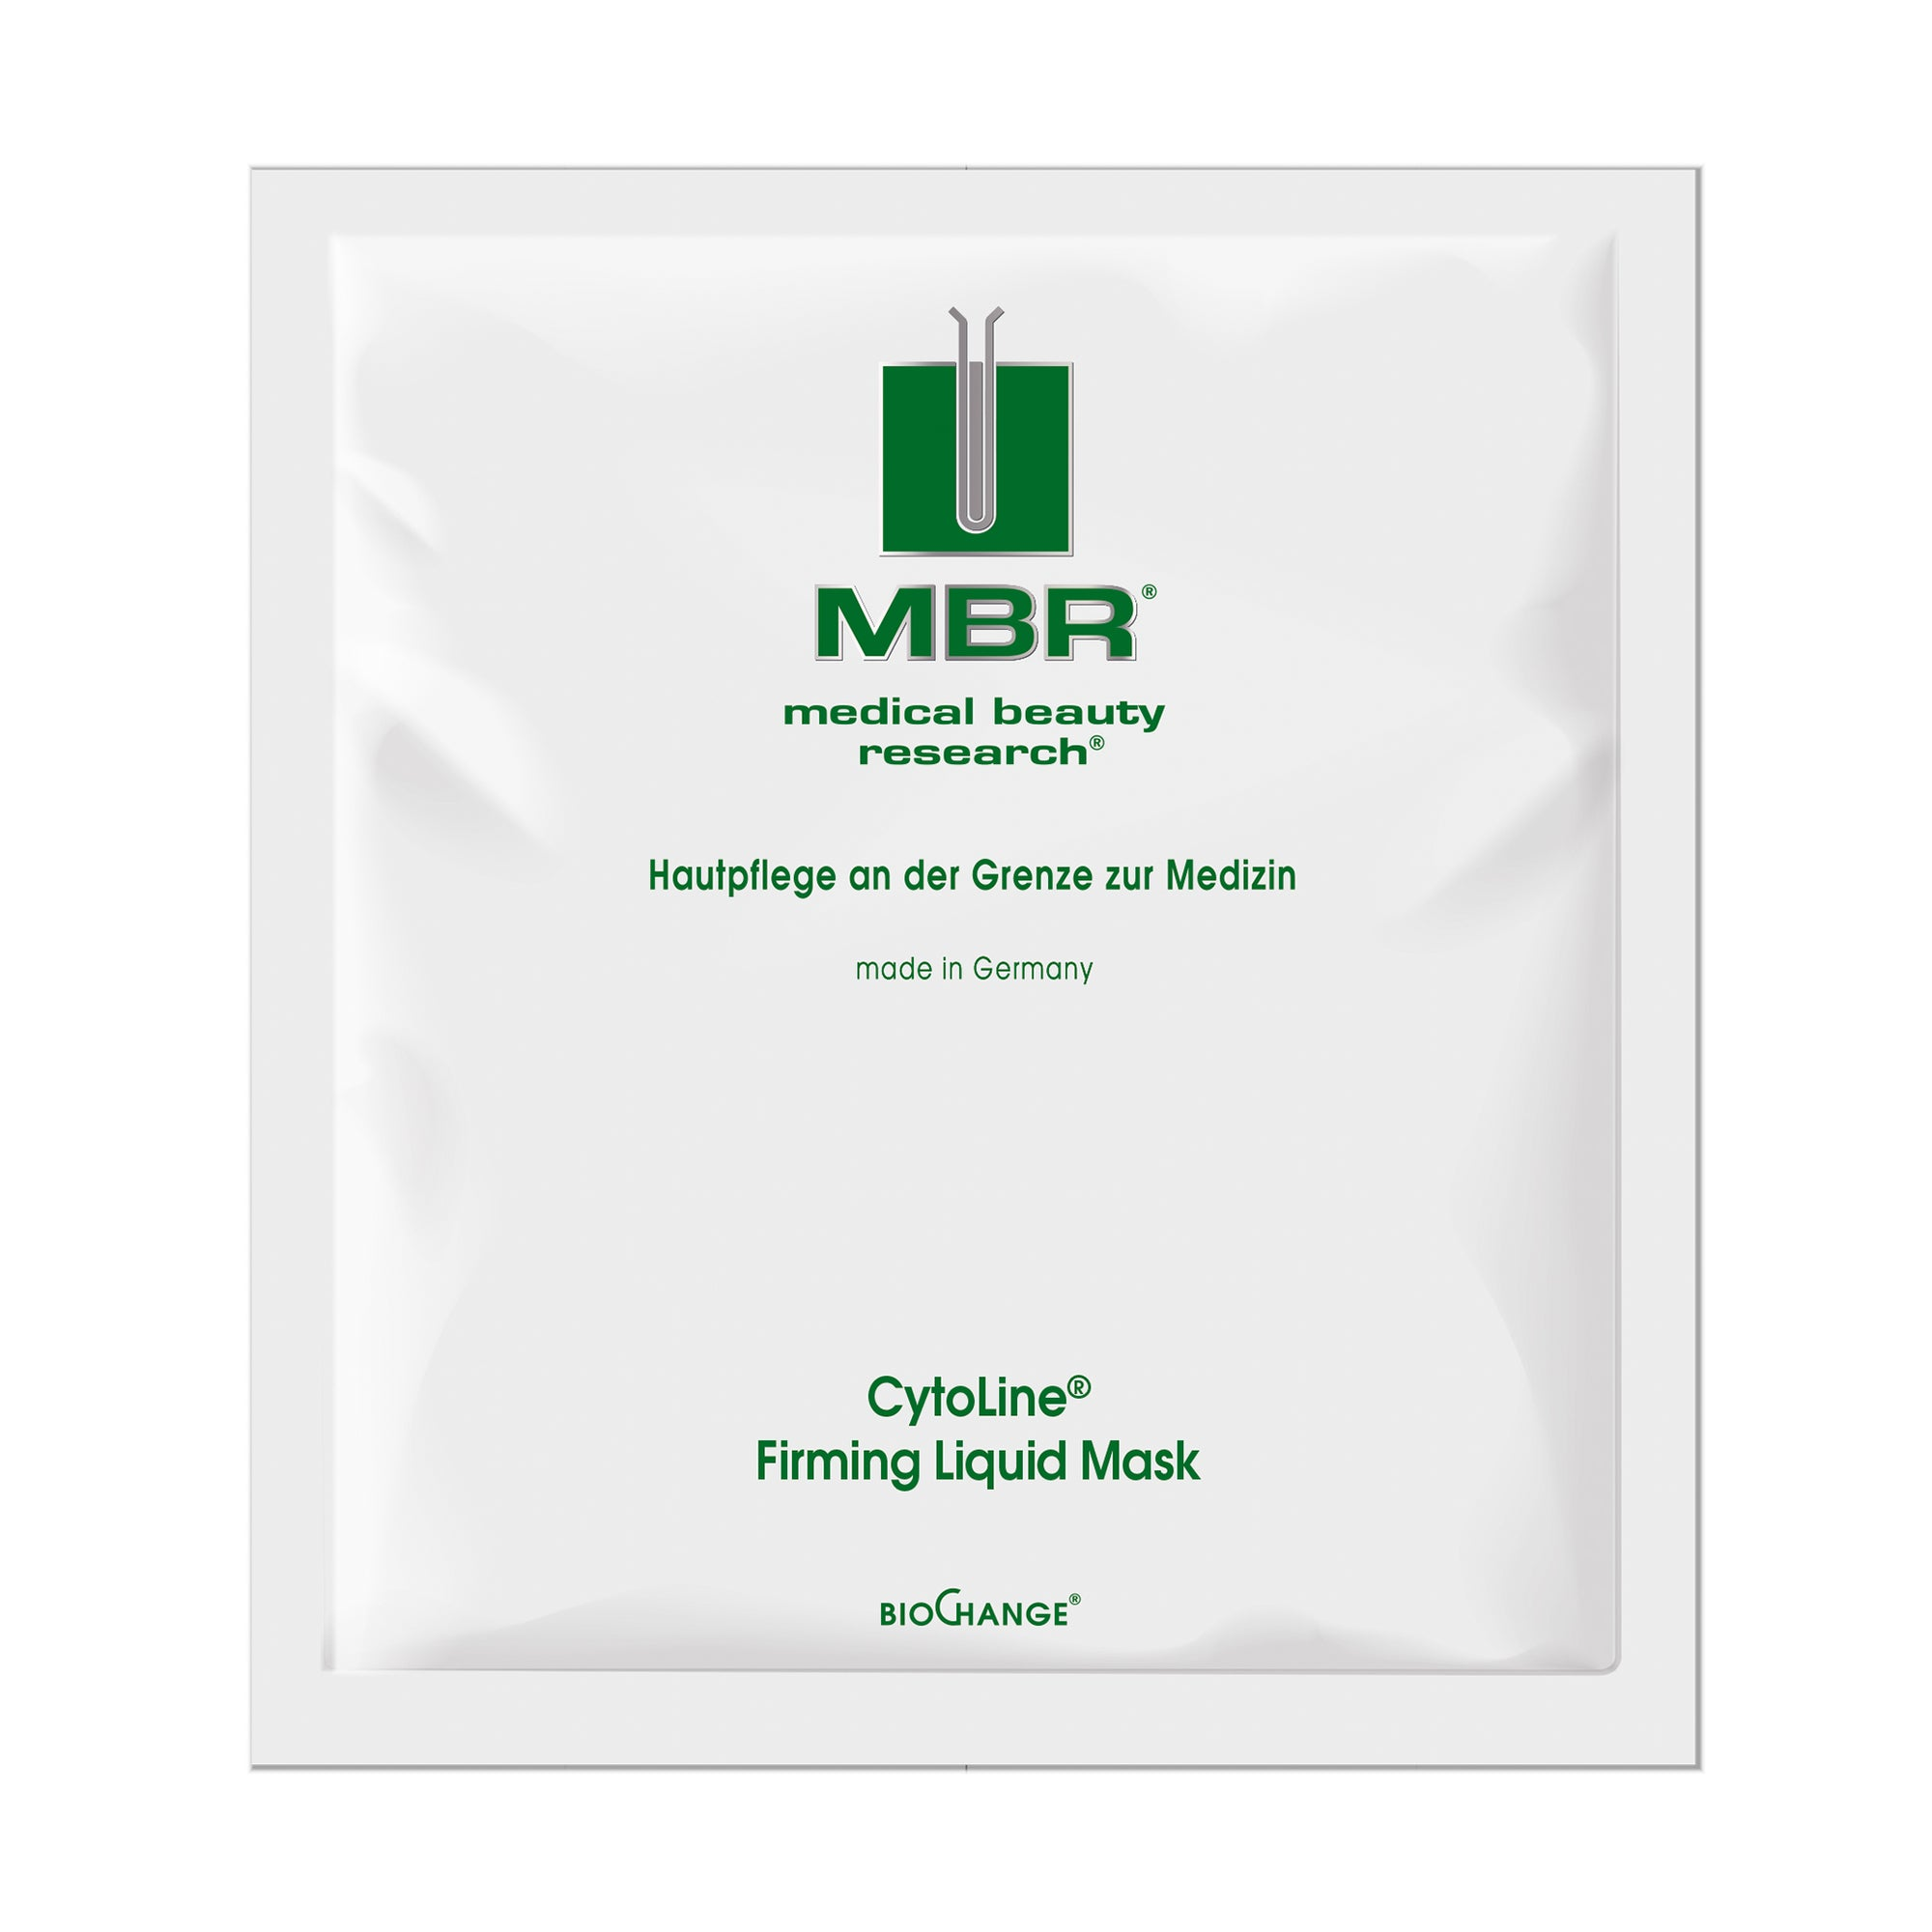 CytoLine® Firming Liquid Mask - MBR